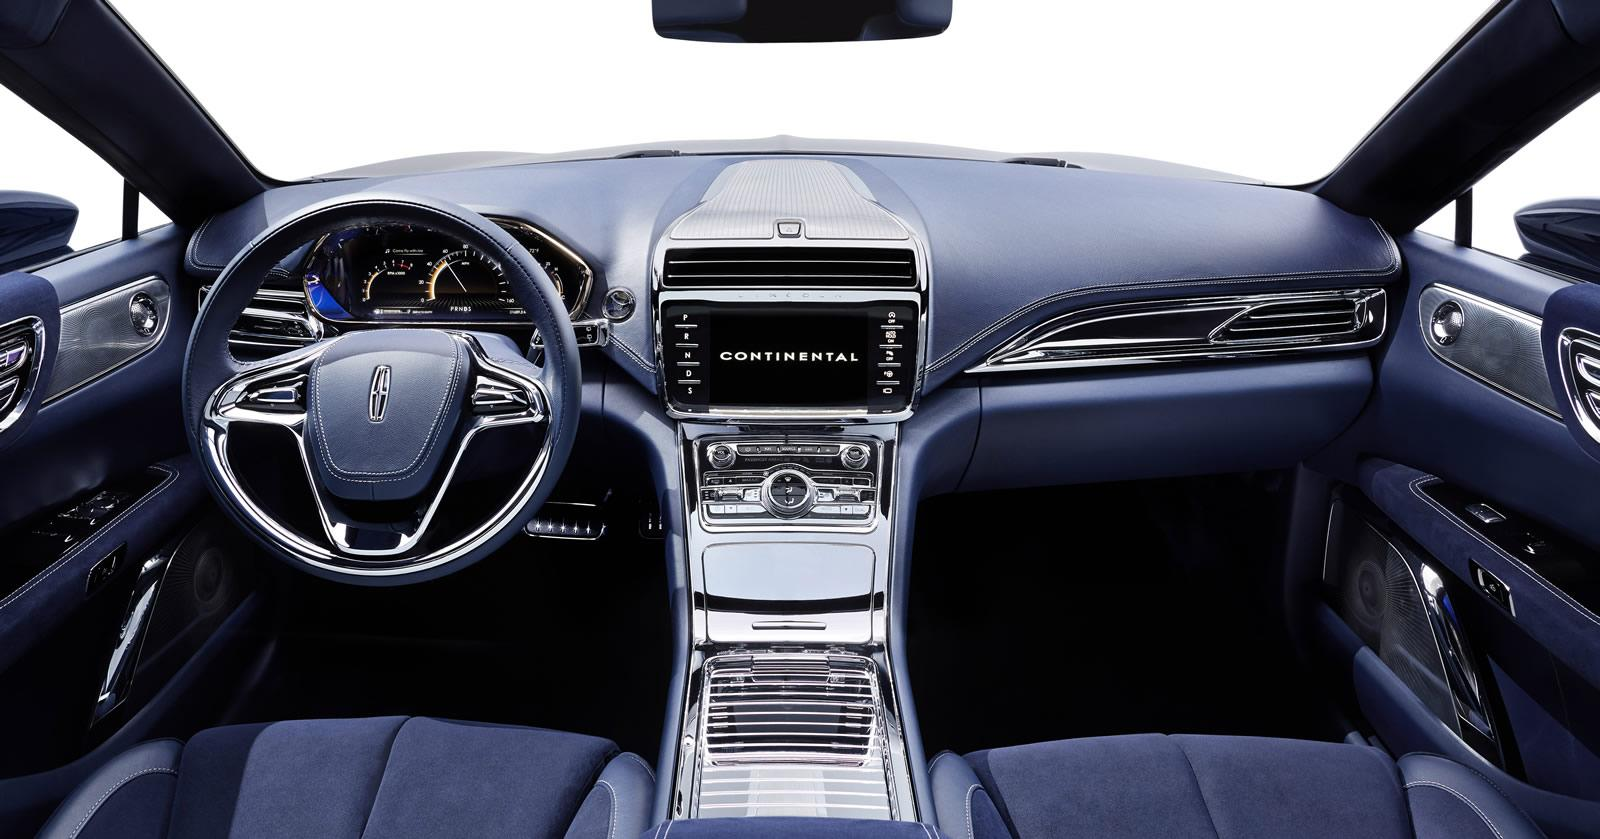 2017 Lincoln Continental Interior >> Lincoln Continental Concept revealed, previews 2016 model ...